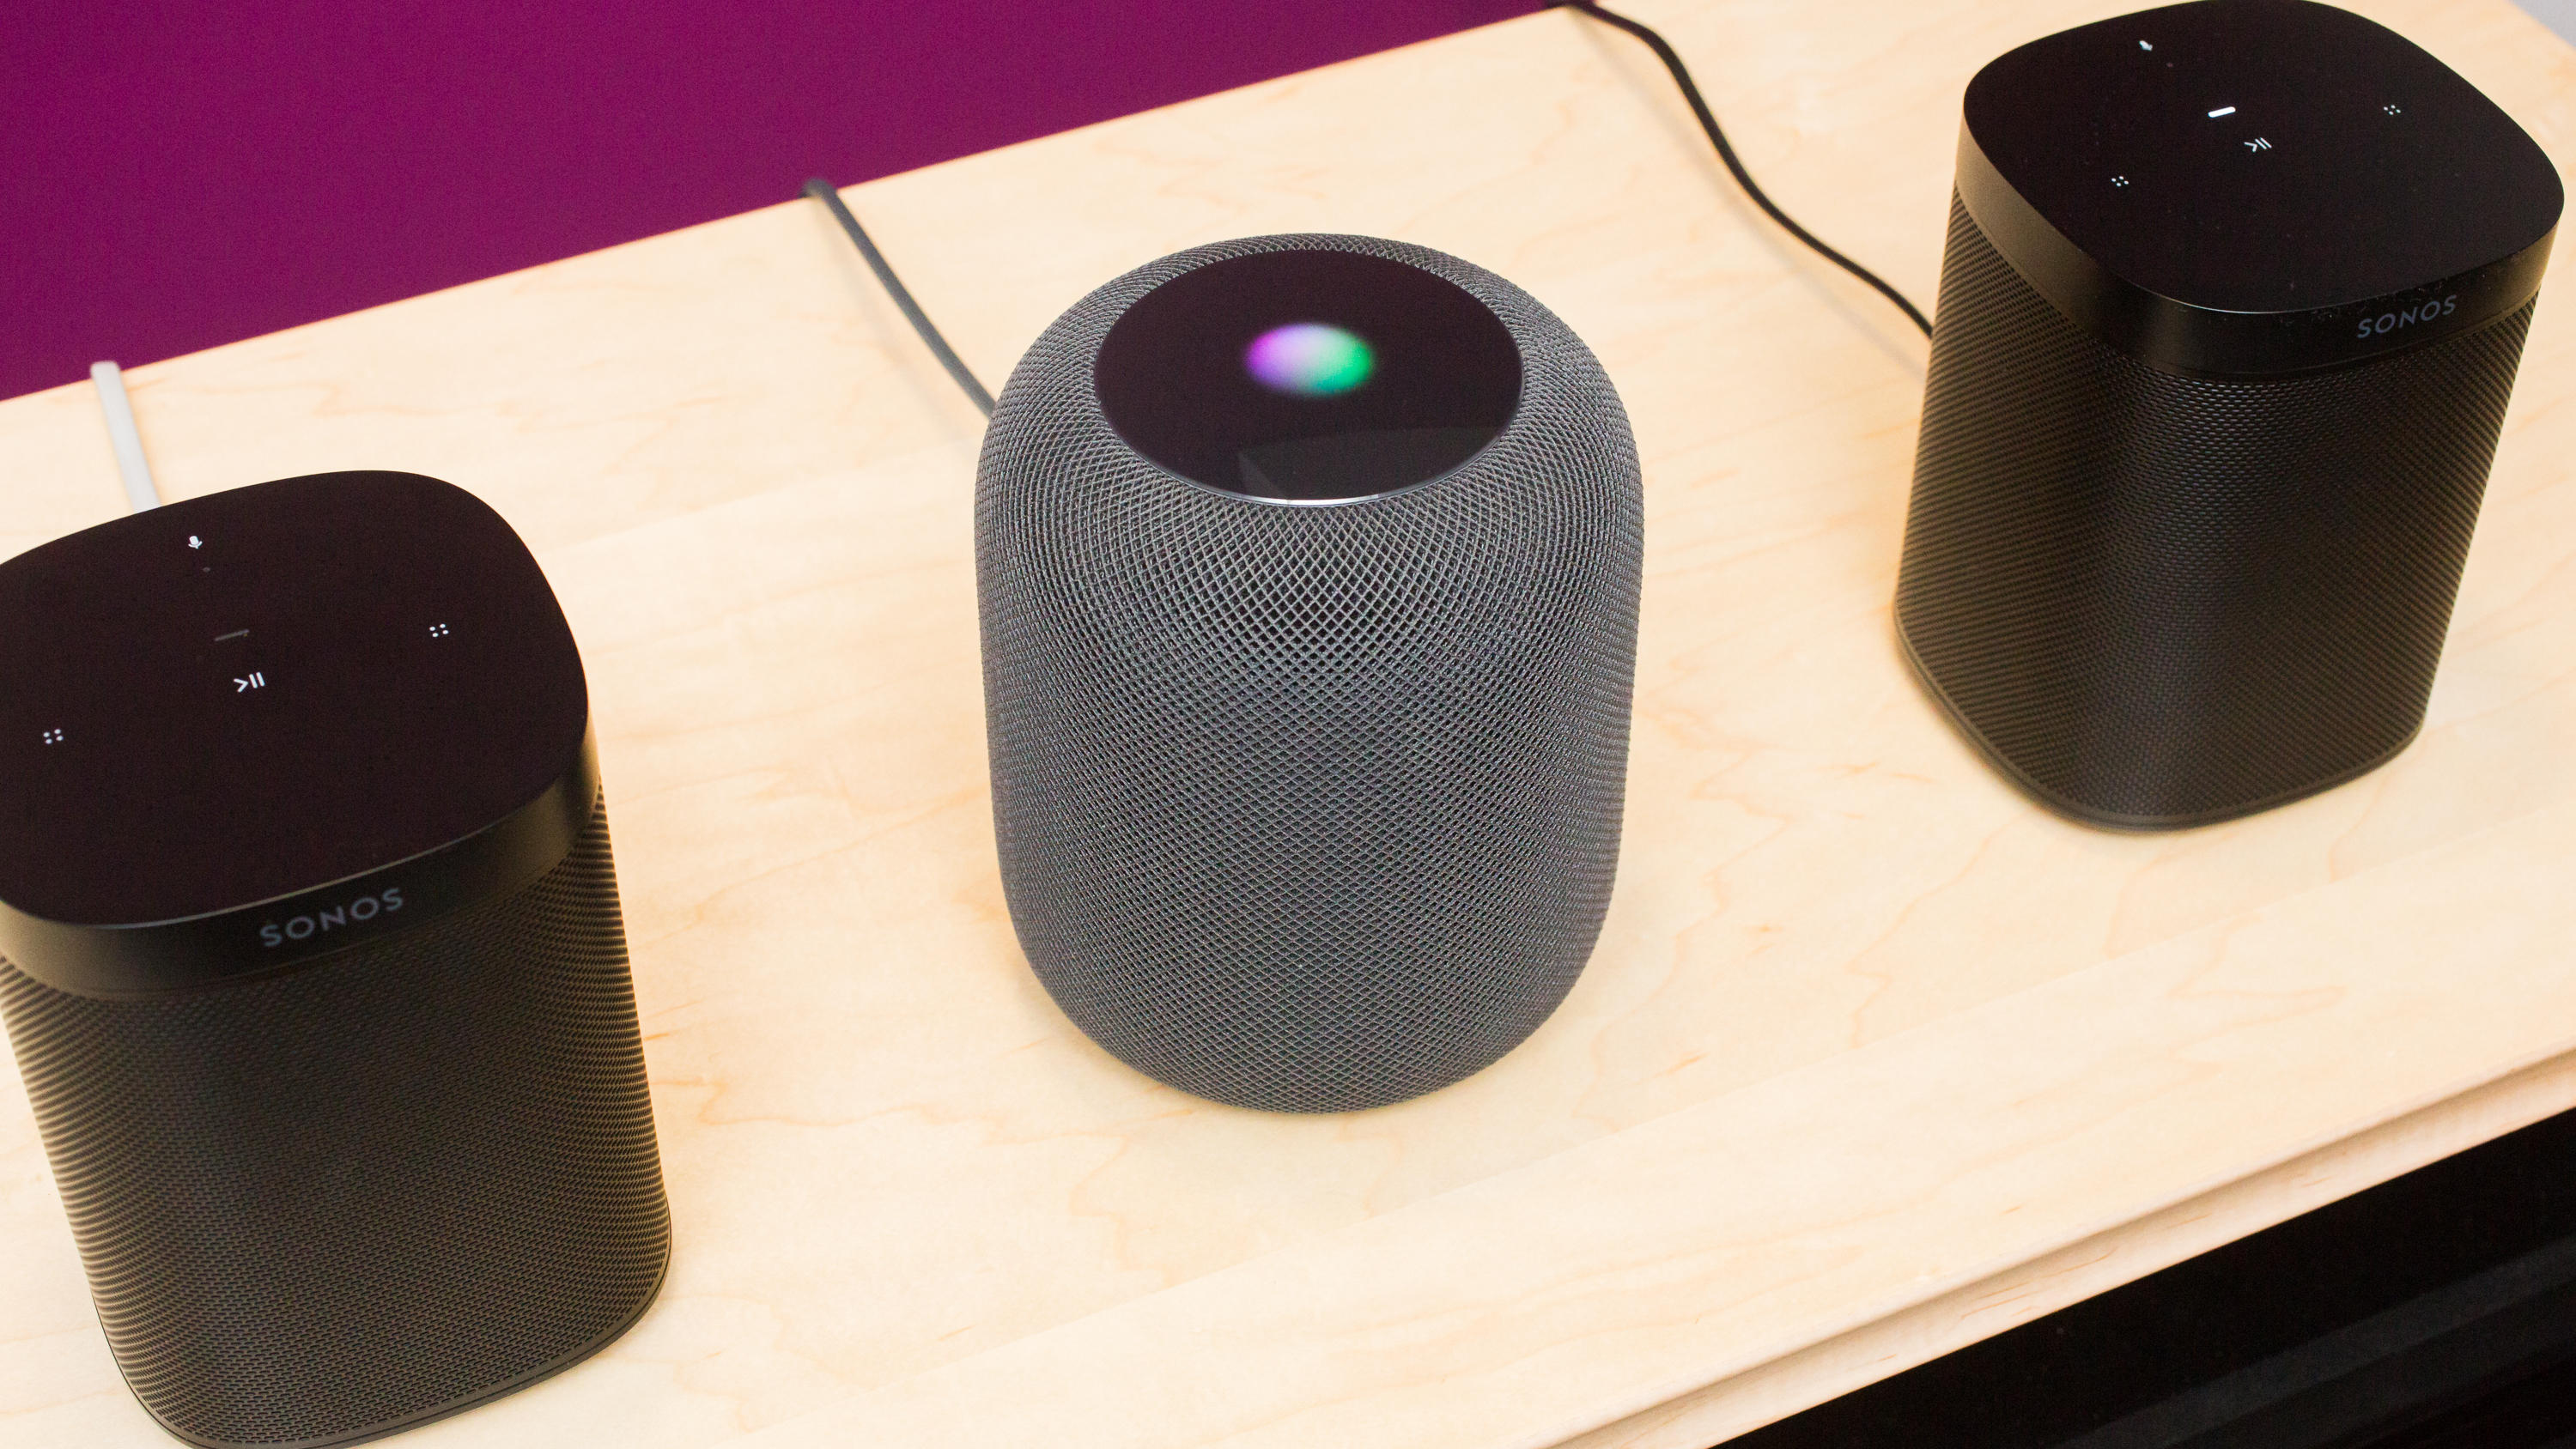 03-apple-homepod-and-sonos-testing